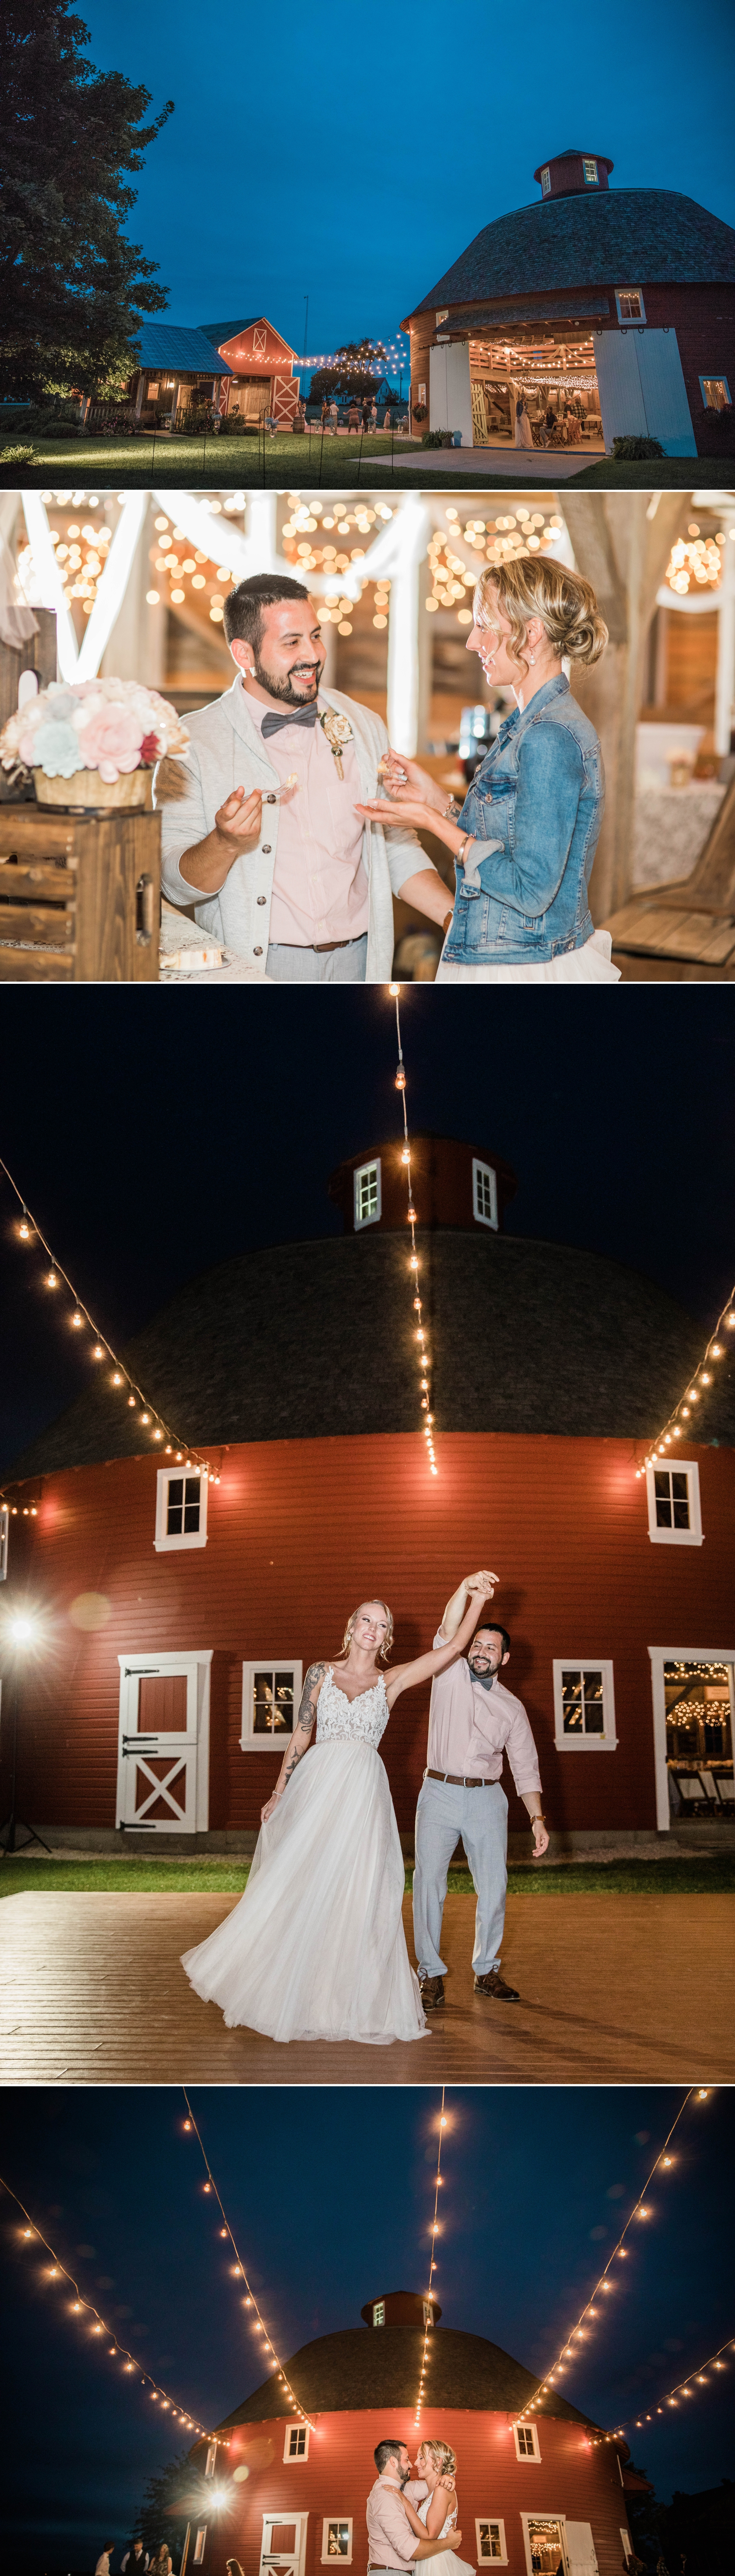 barn details kelley agricultural museum farm bride groom wedding party reception